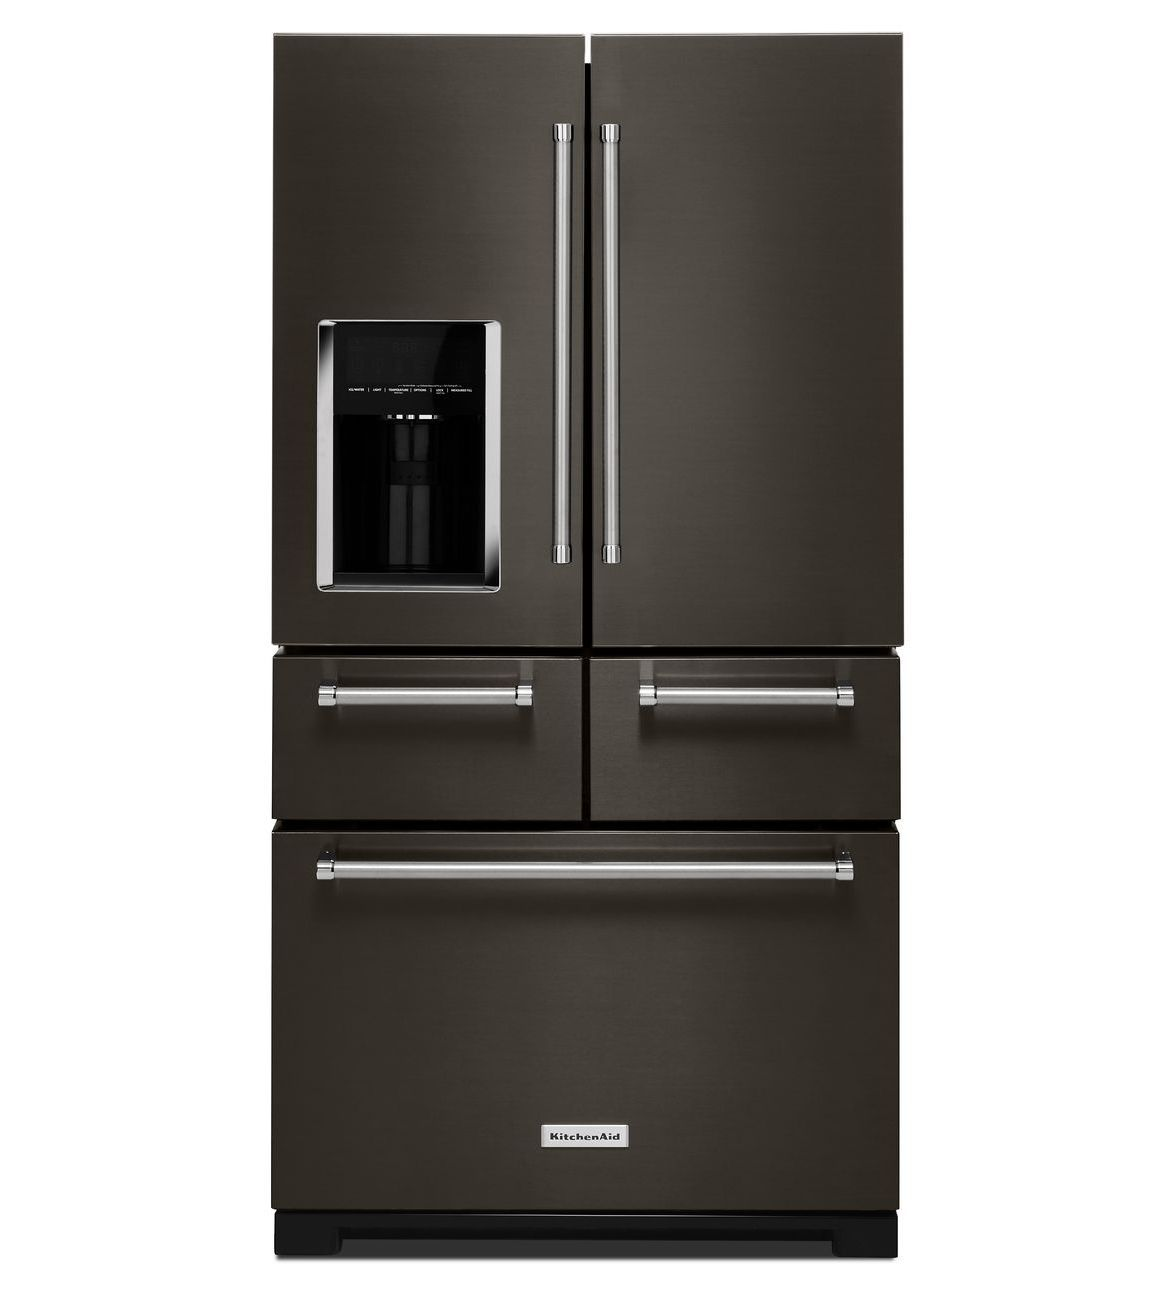 Black Stainless, 5 Door Refrigerator By Kitchenaid. Black Stainless Is The  Hottest New Color